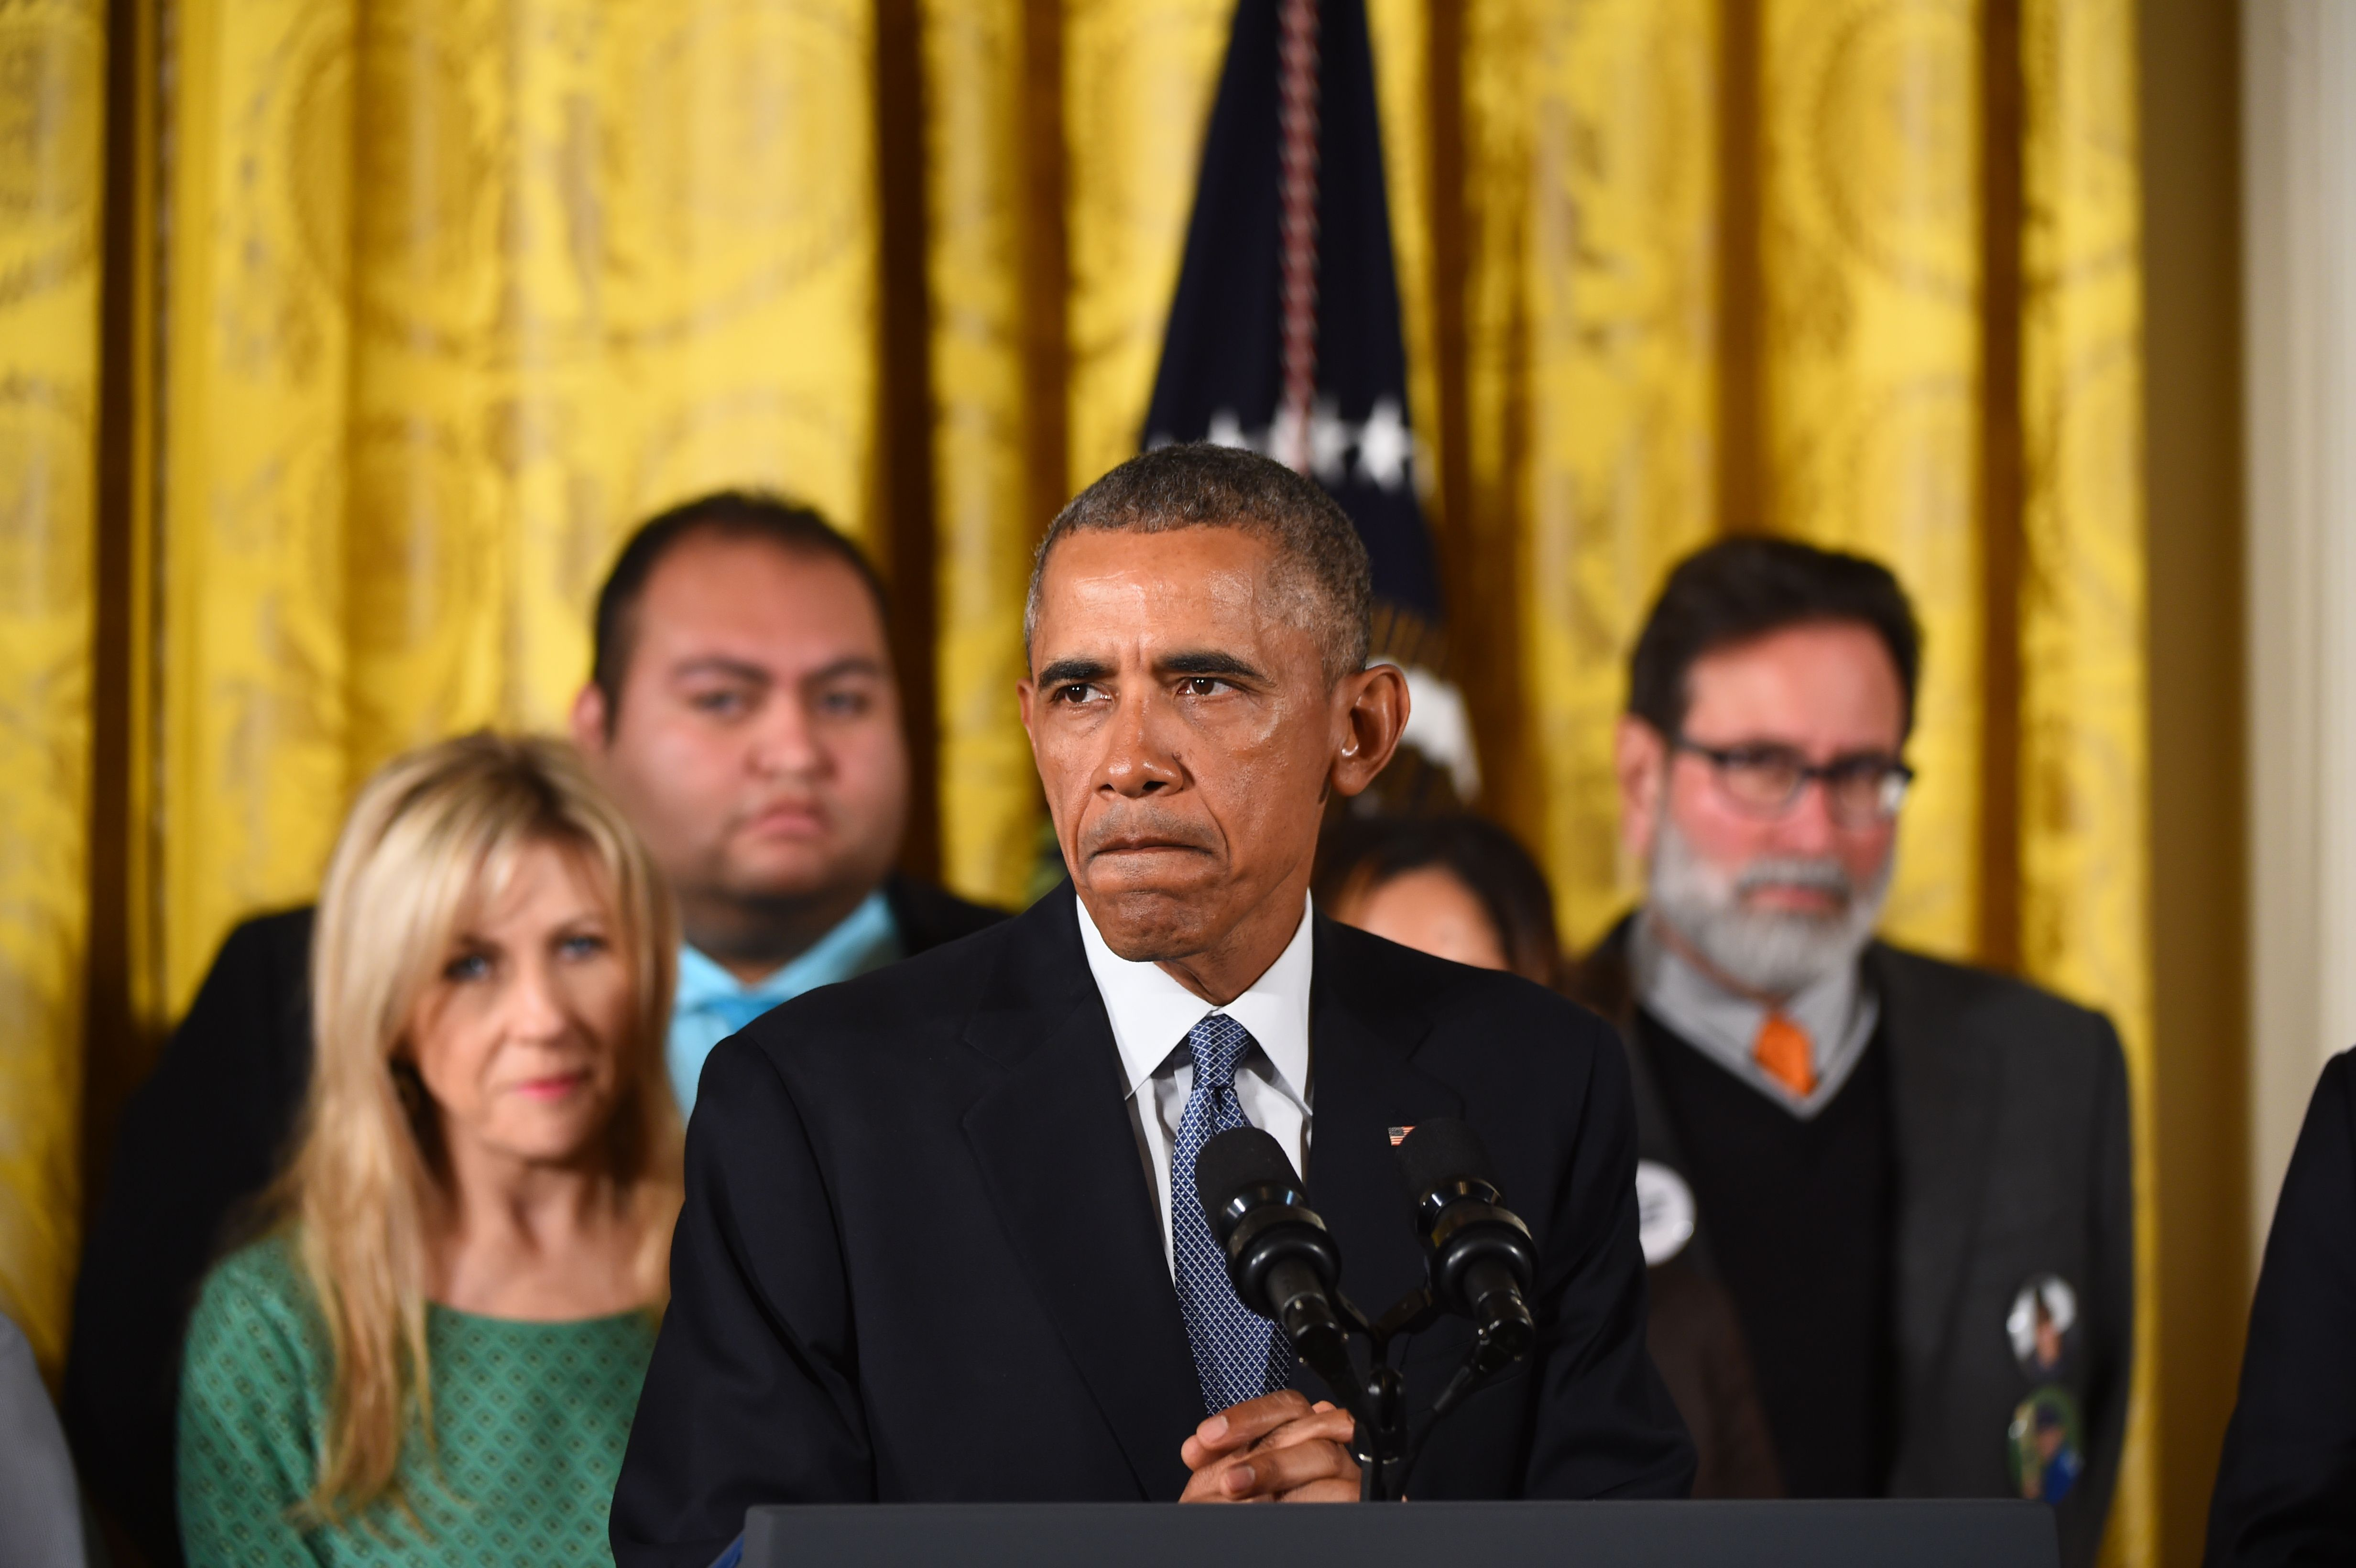 US President Barack Obama delivers a statement on executive actions to reduce gun violence on January 5, 2016 at the White House. (Getty)